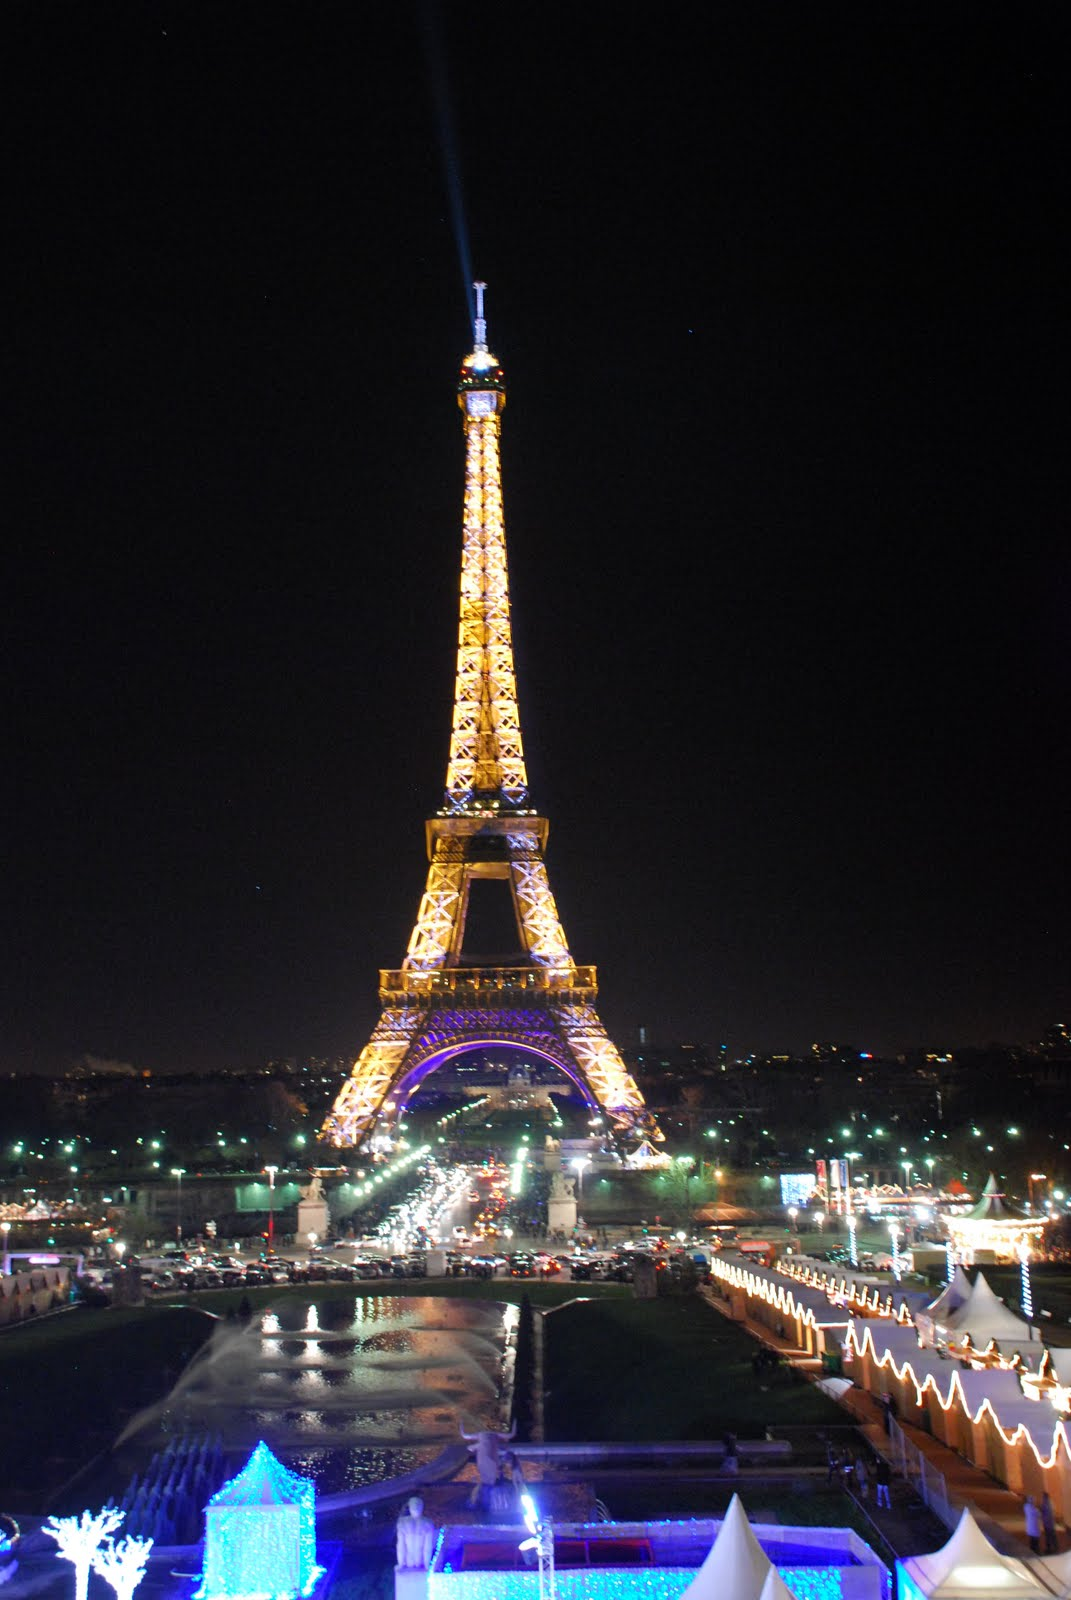 Flowers and more: Eiffel Tower Under Christmas Lights